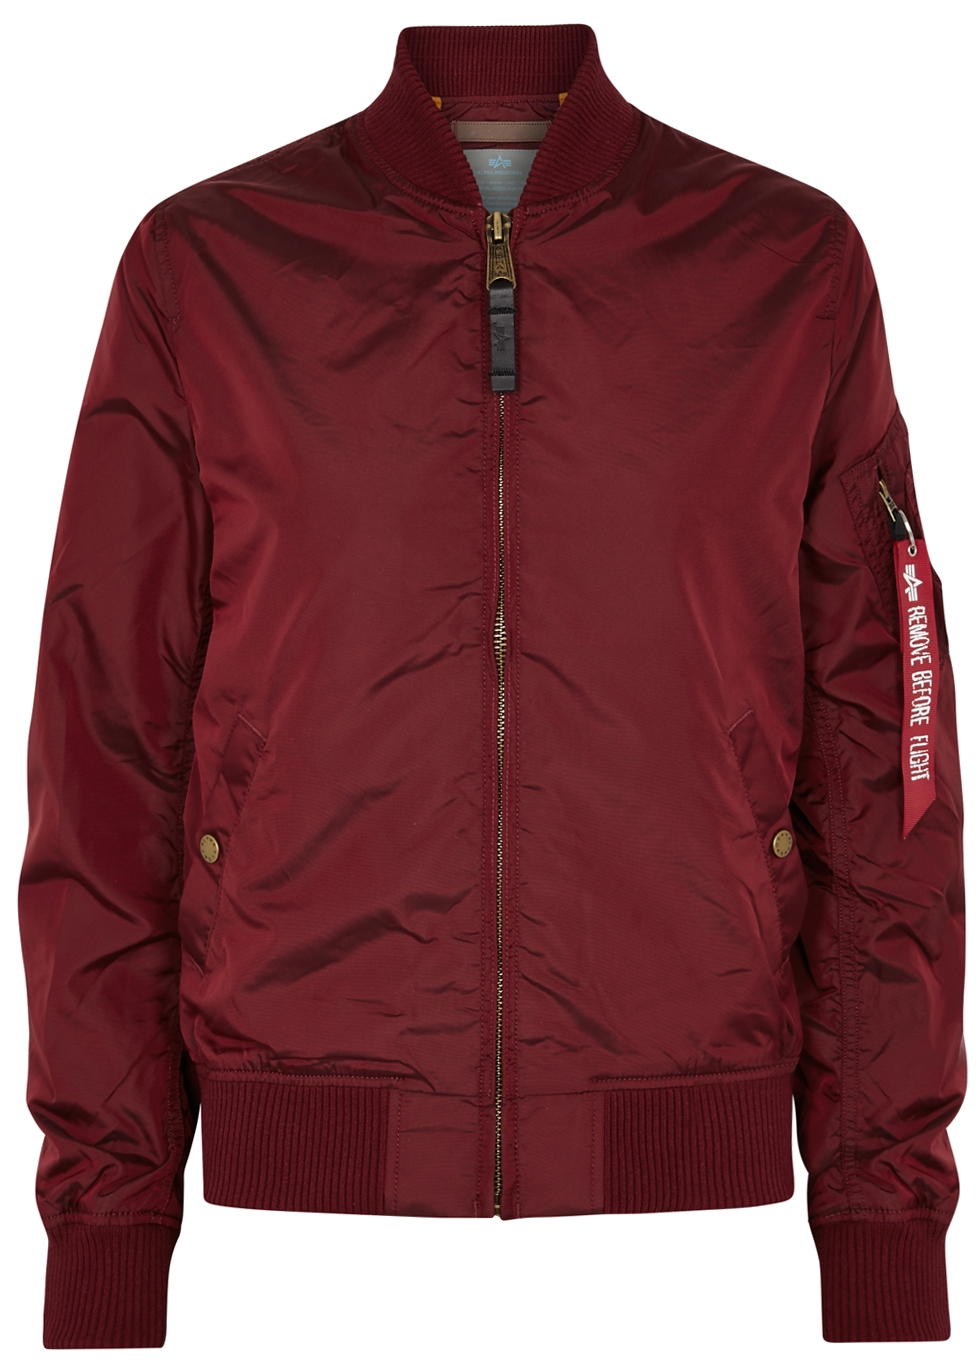 Ma1-Tt Bordeaux Bomber Jacket in Burgundy